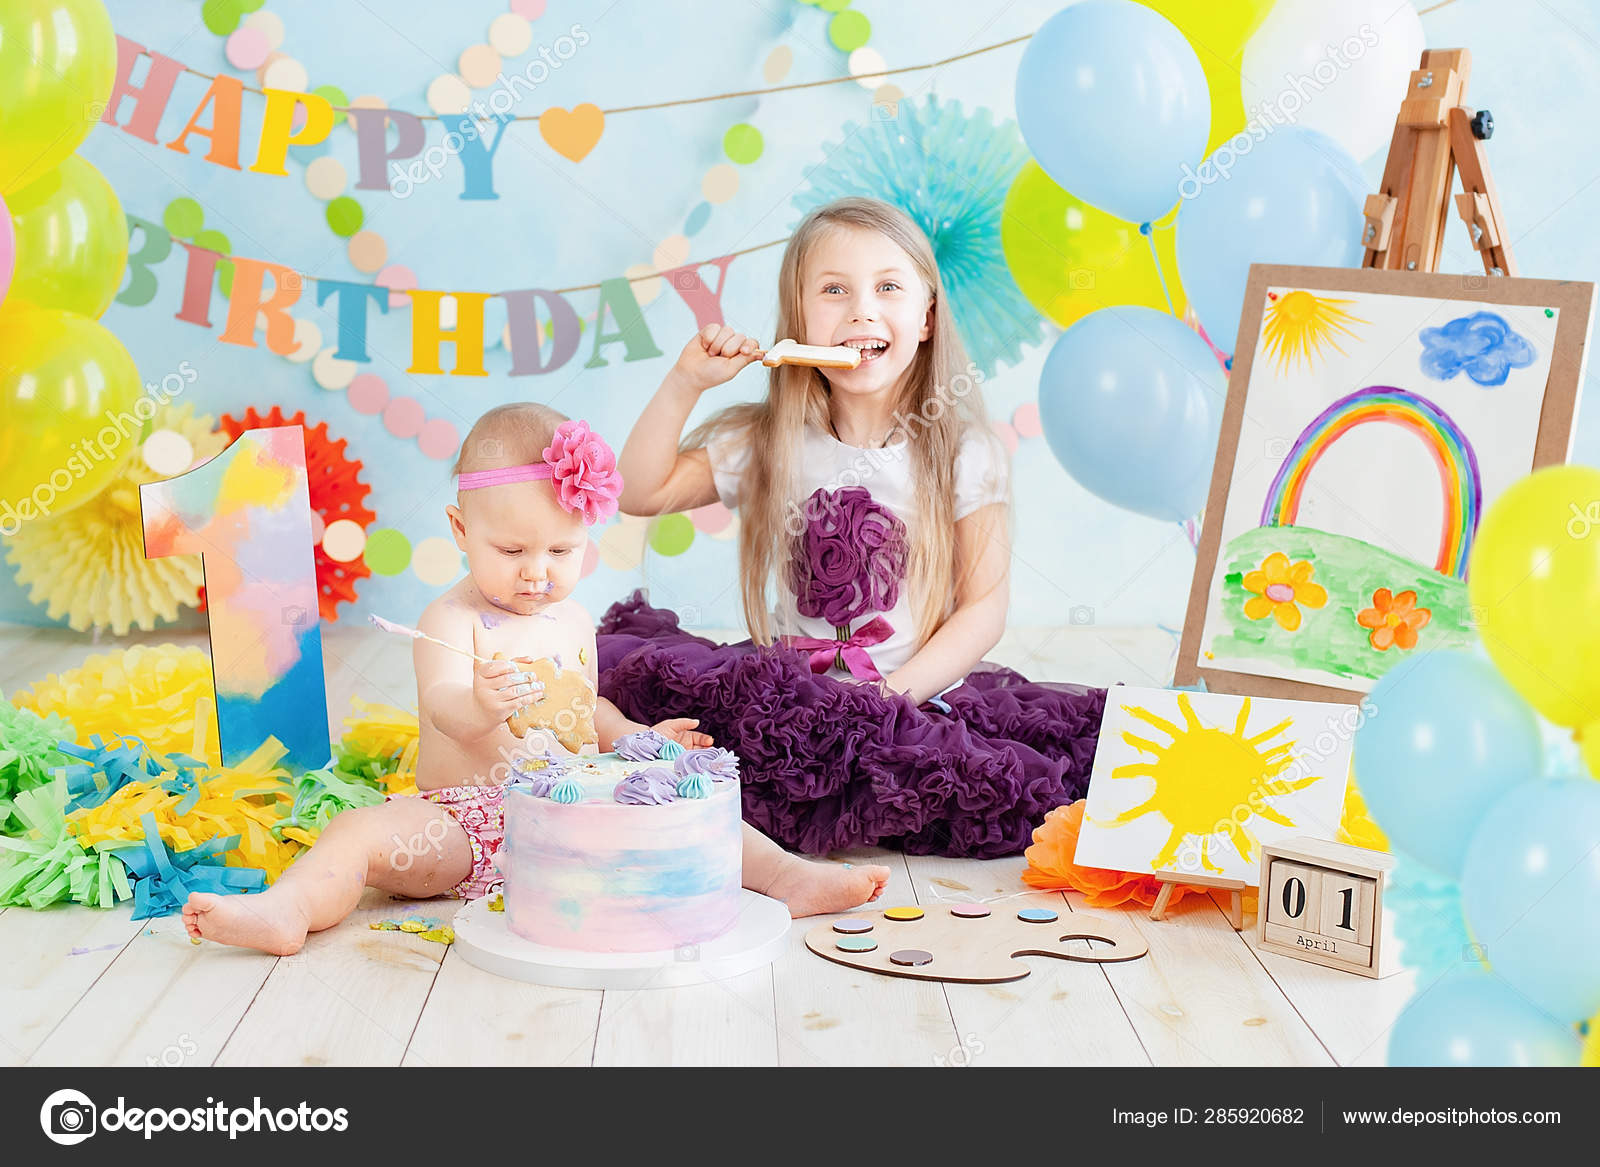 Groovy Decoration Girl First Birthday Smash Cake Art Painter Style Baby Funny Birthday Cards Online Inifofree Goldxyz